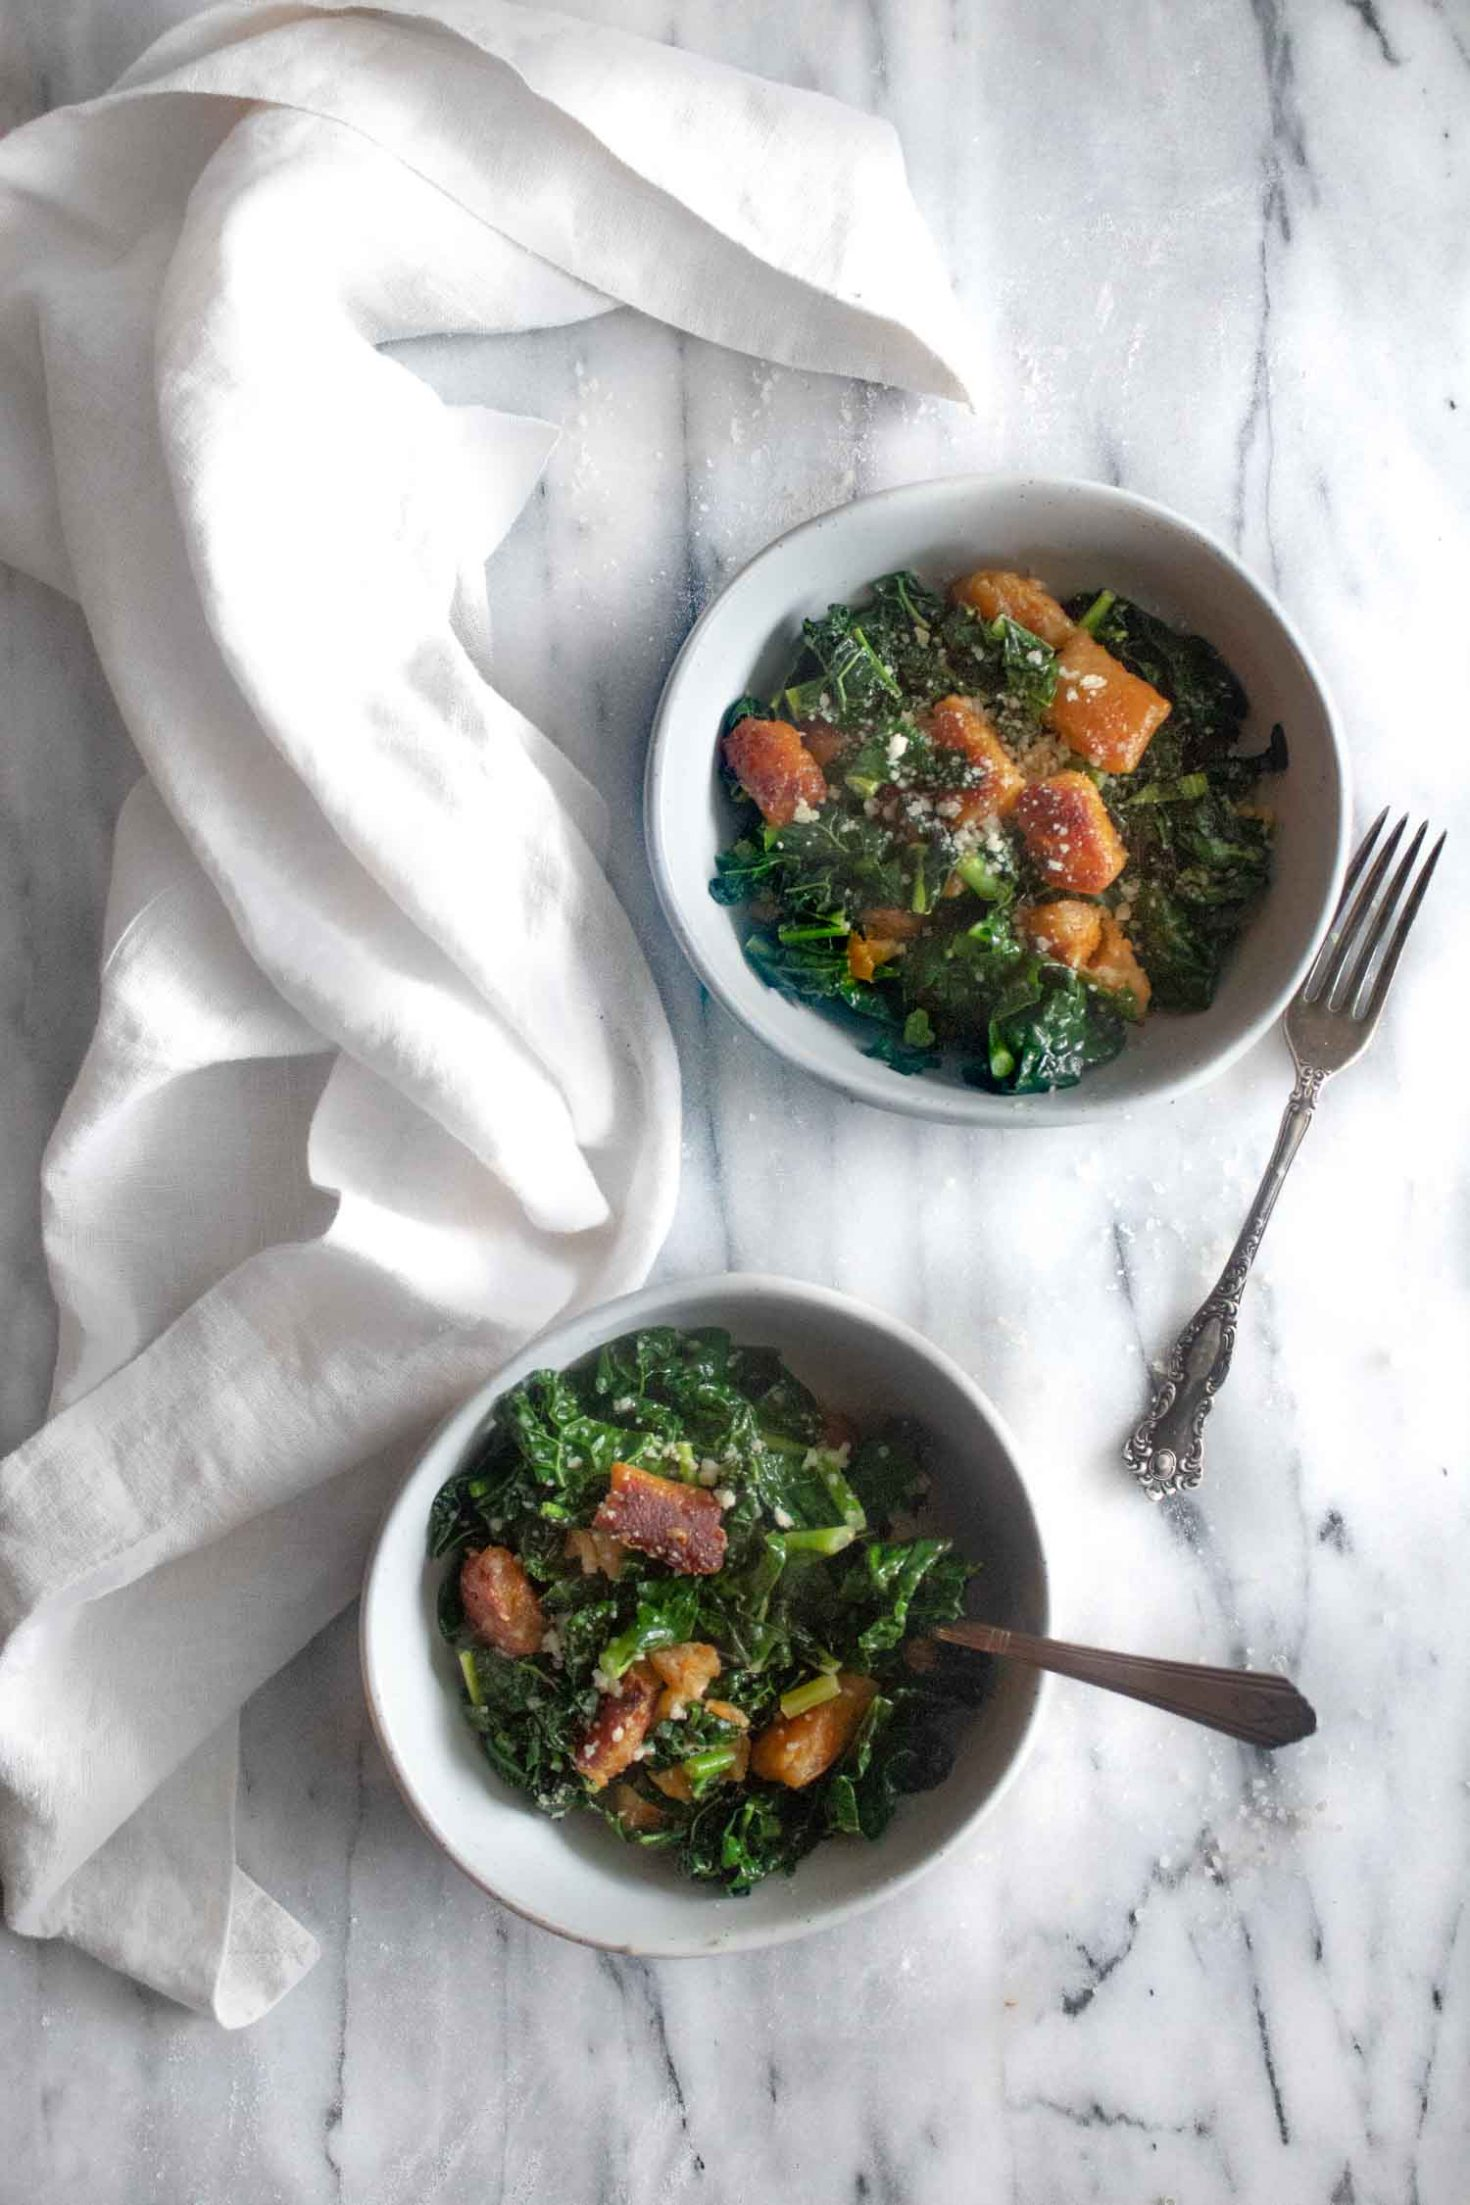 two bowls of sweet potato gnocchi with kale, white napkin, and two forks